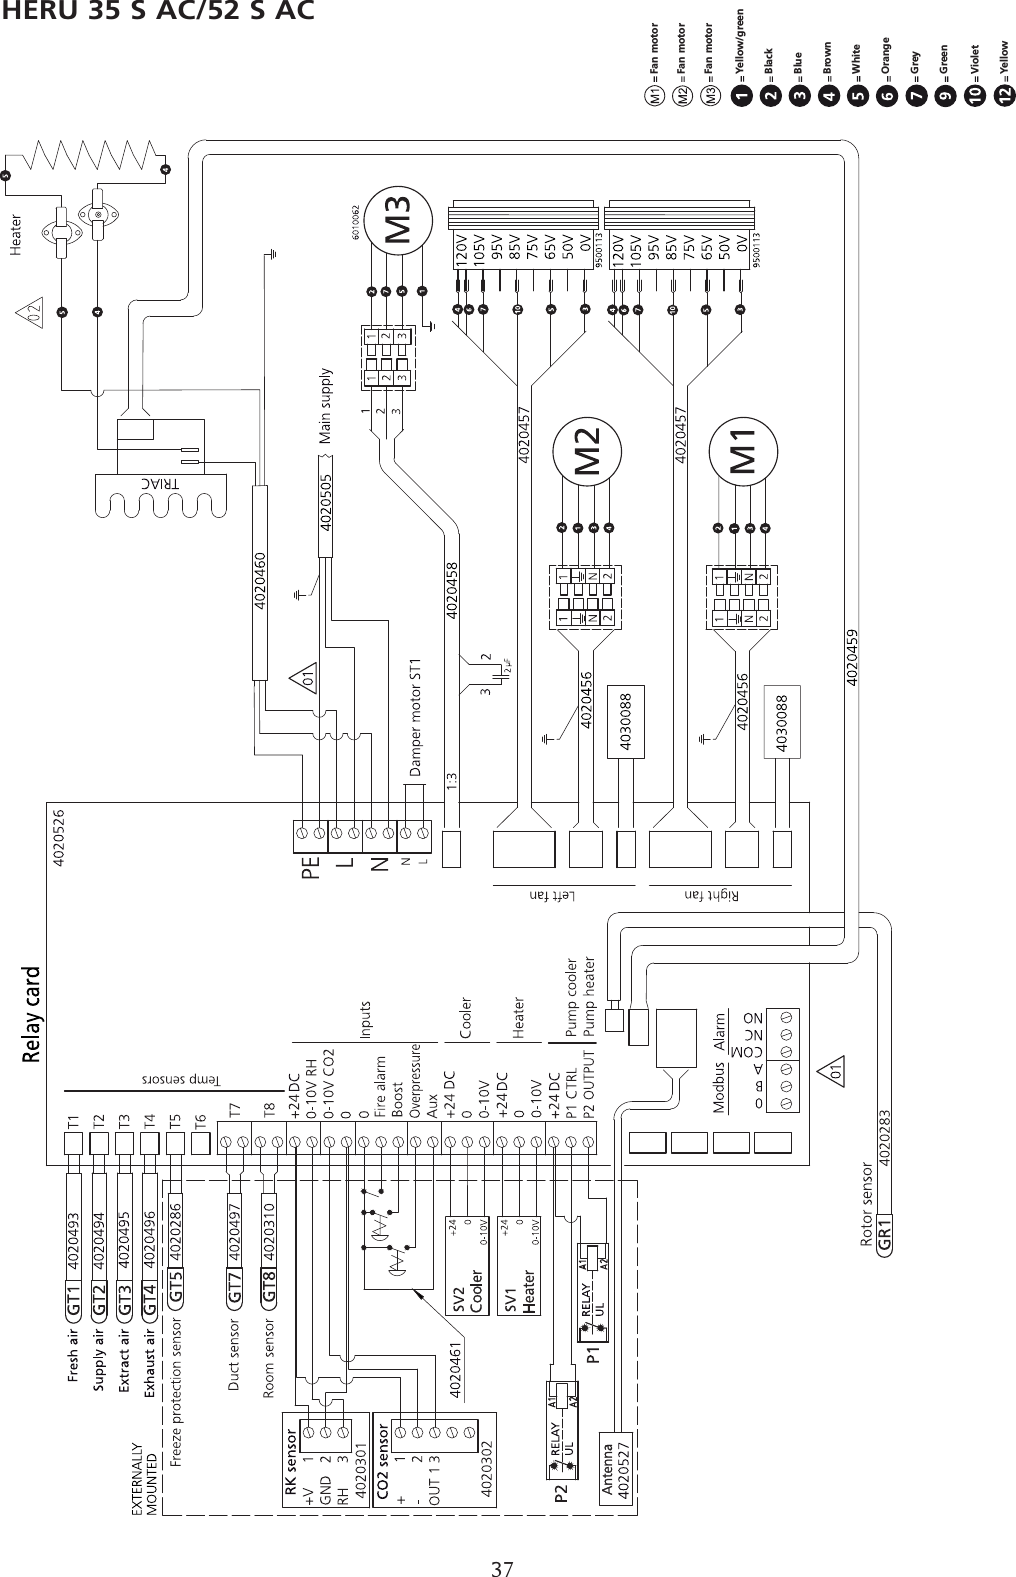 Ab Ca Ostberg 4020528 Remote Control For Heatrecovery Units User Orange Cooler Wiring Diagram 4040149heru 35 S Ac 52 37fan Motor Fan